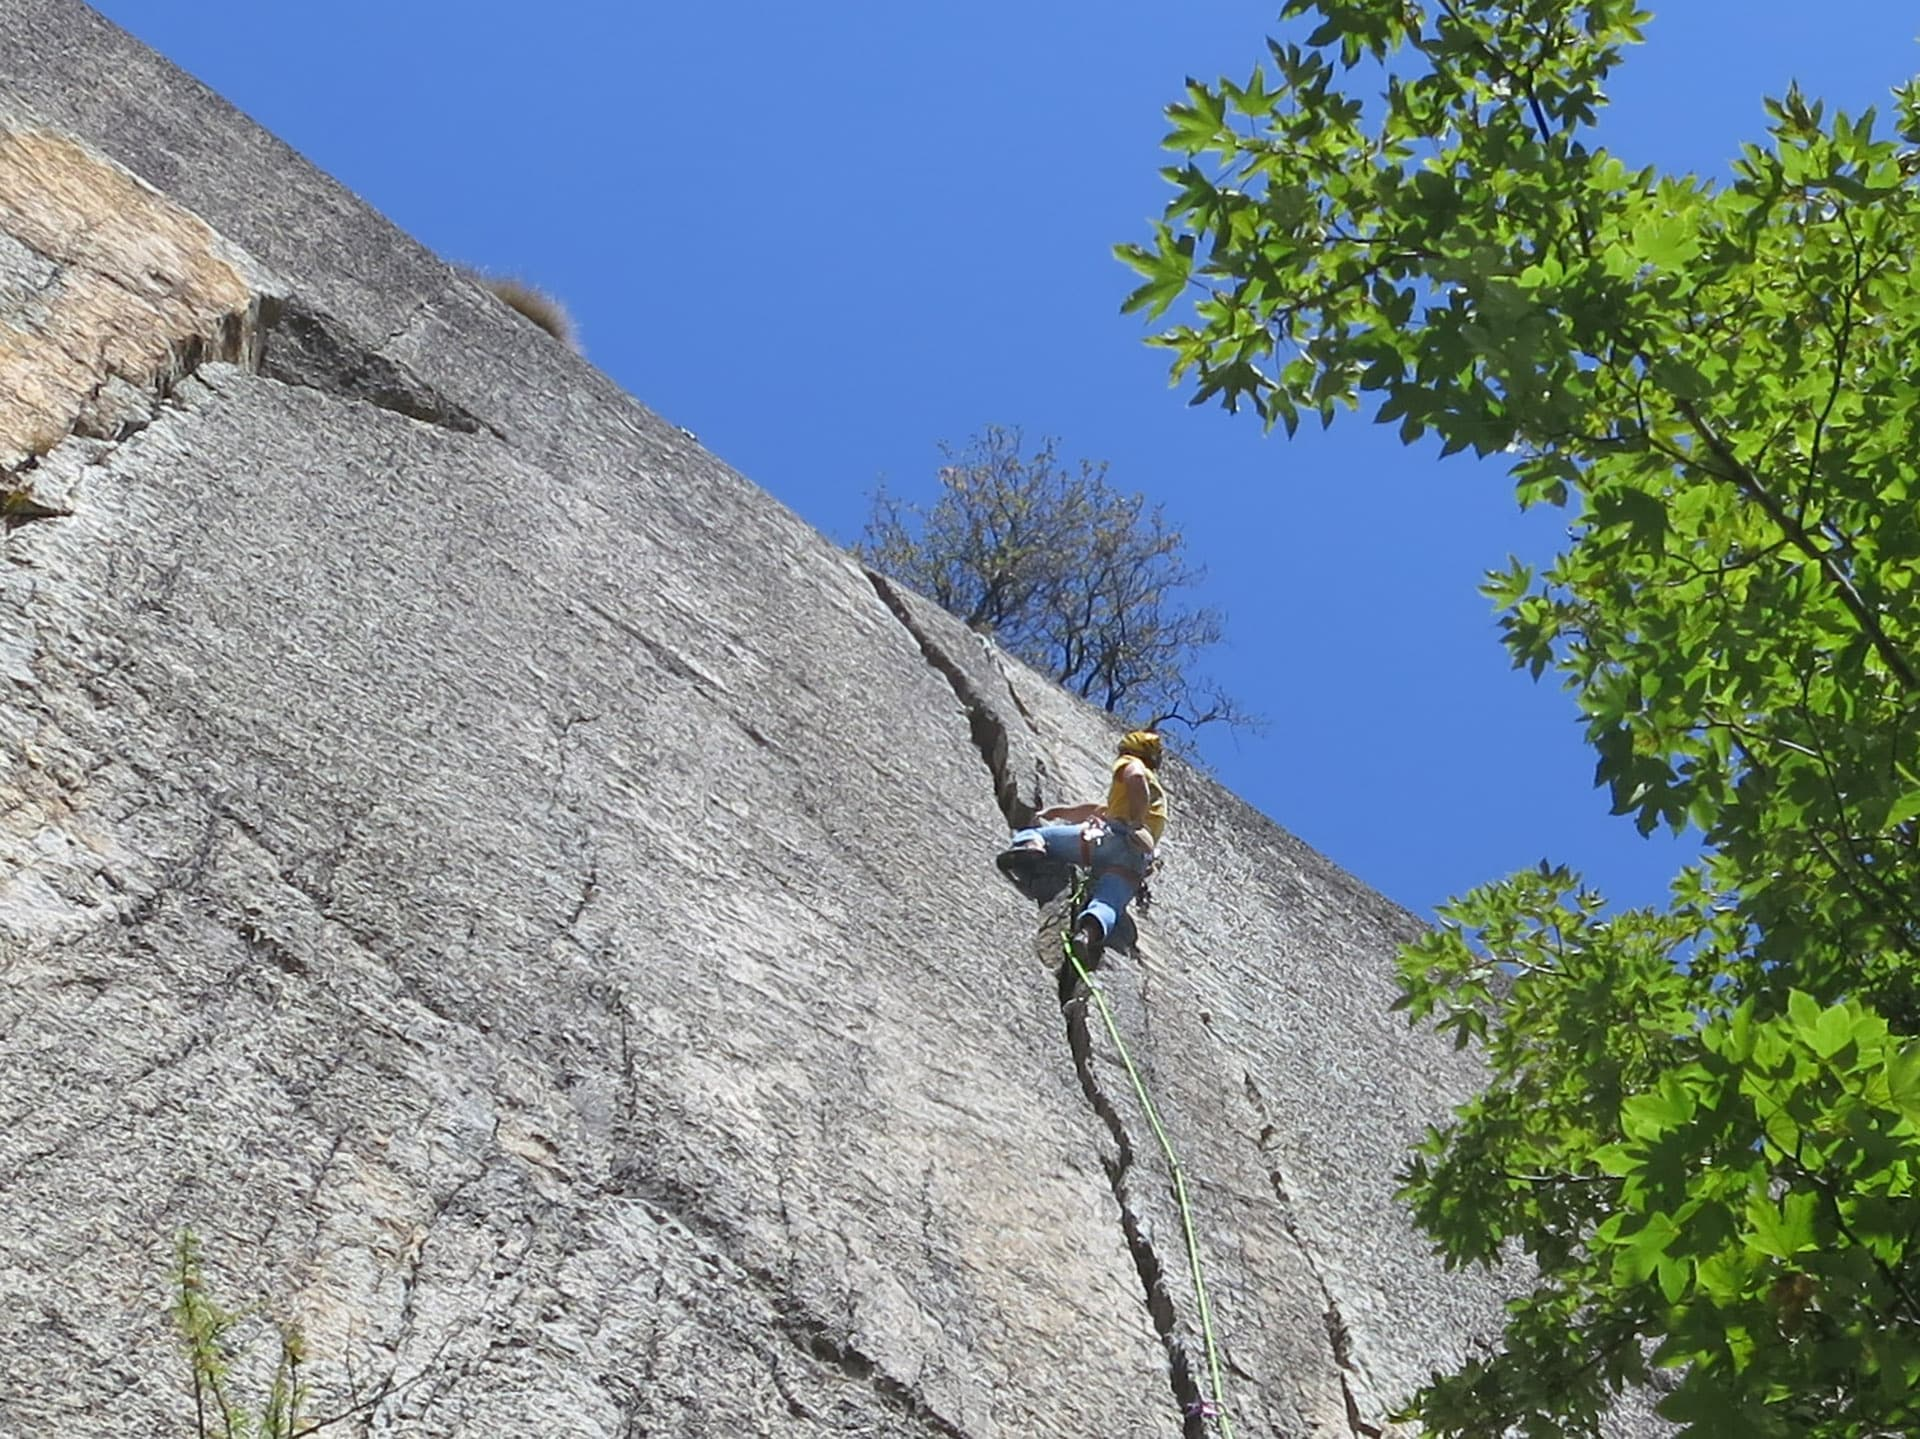 3-day Trad Climbing course for beginners in Ossola Valley